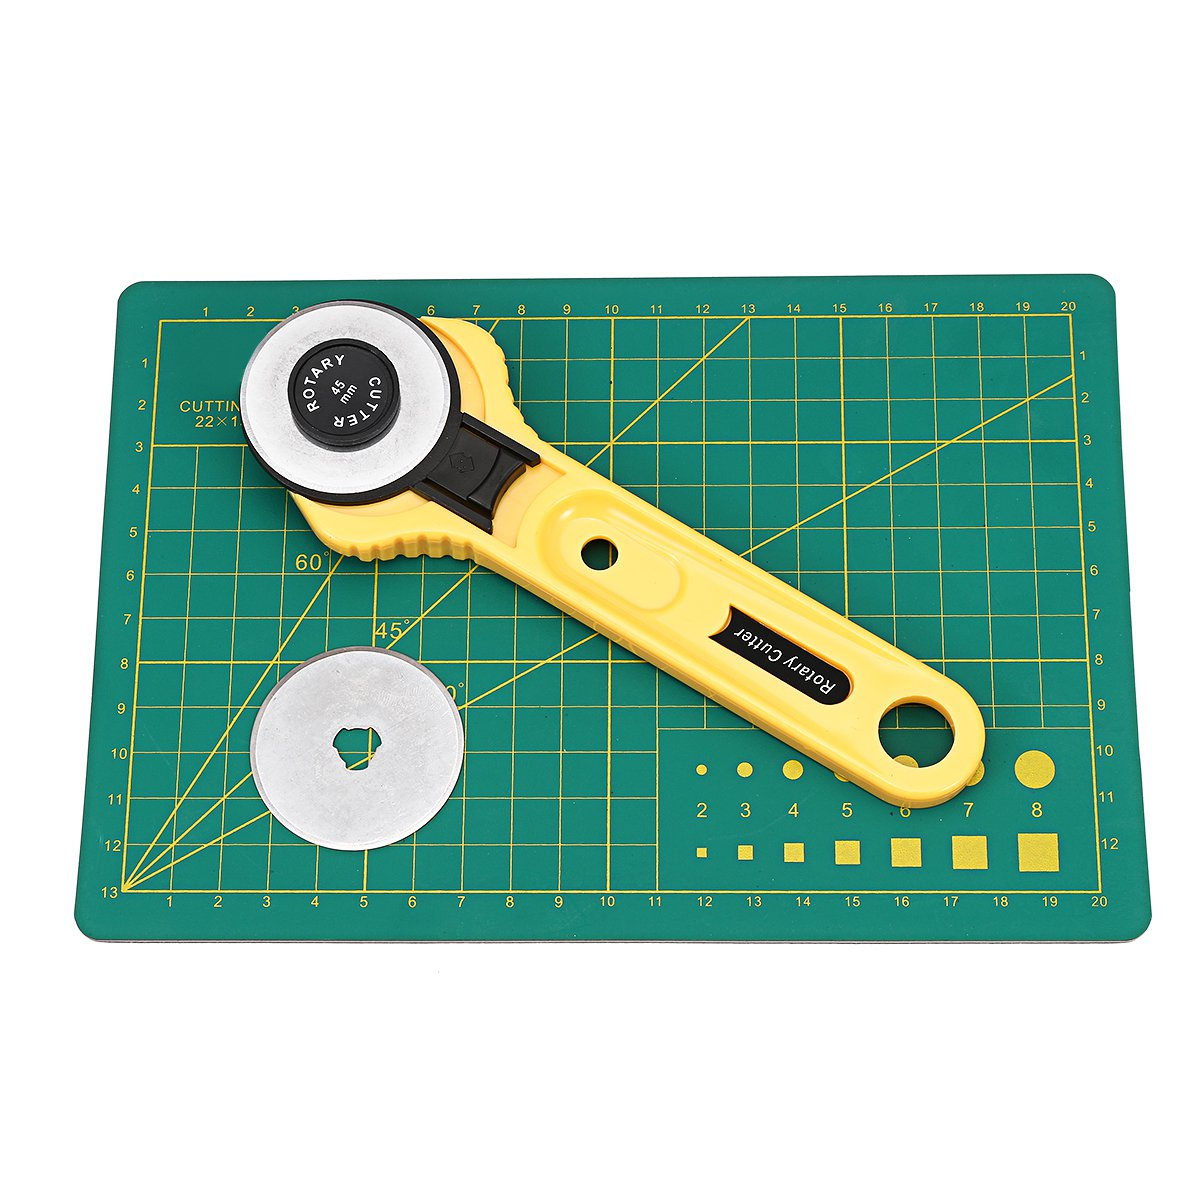 45mm Rotary Cutter Blades Cutting Mat Clip Quilters Sewing Fabric Leather Craft Tools Kit